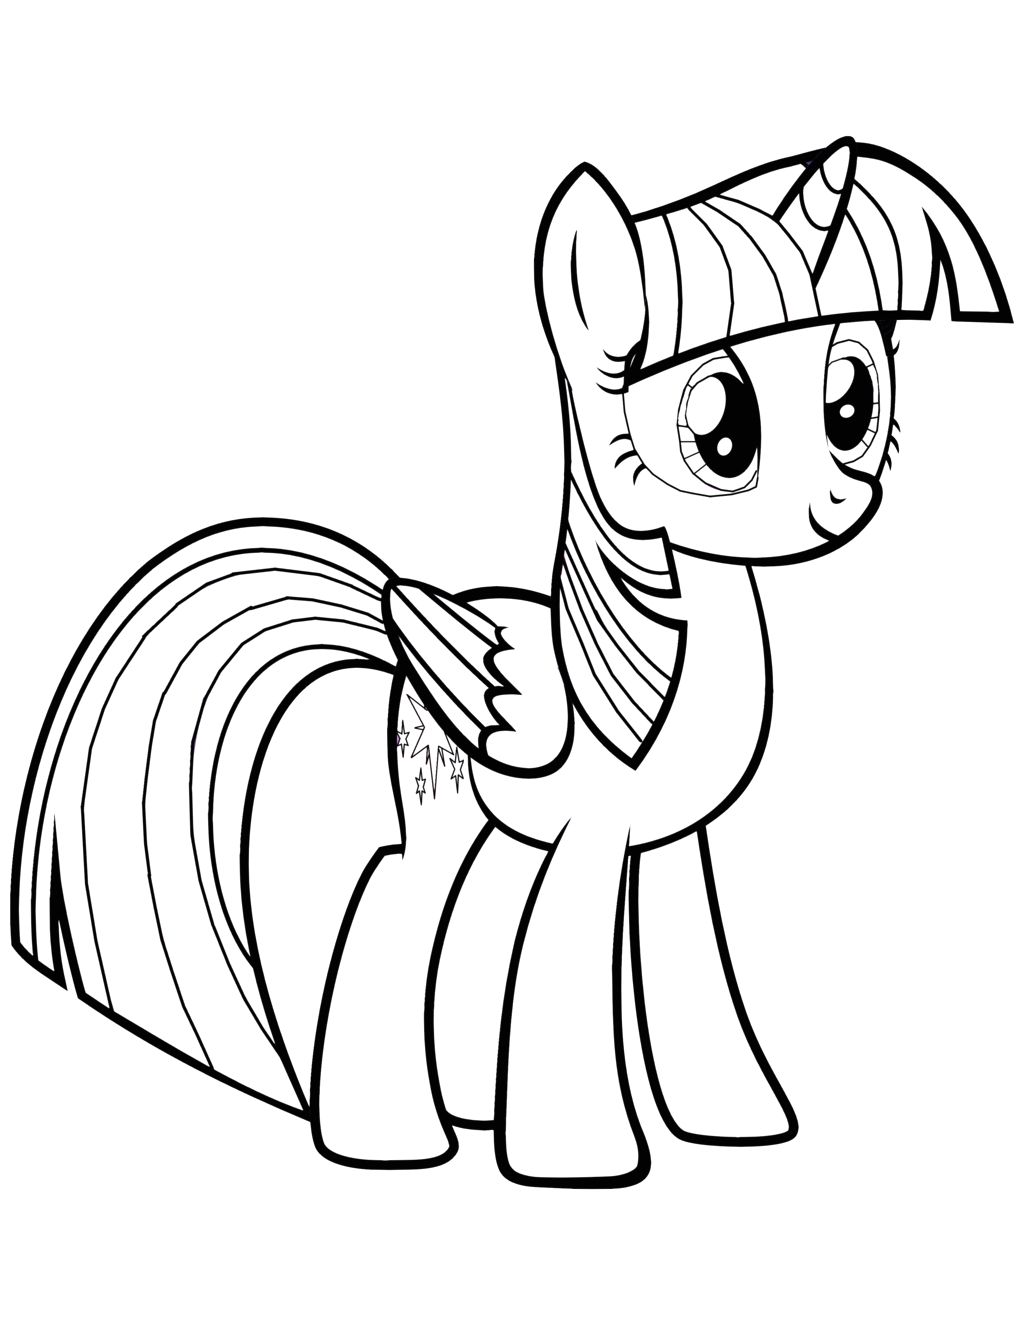 My Little Pony Coloring Pages Princess Twilight Sparkle Alicorn Twilight Sparkle Alicorn Coloring Pages at Getcolorings